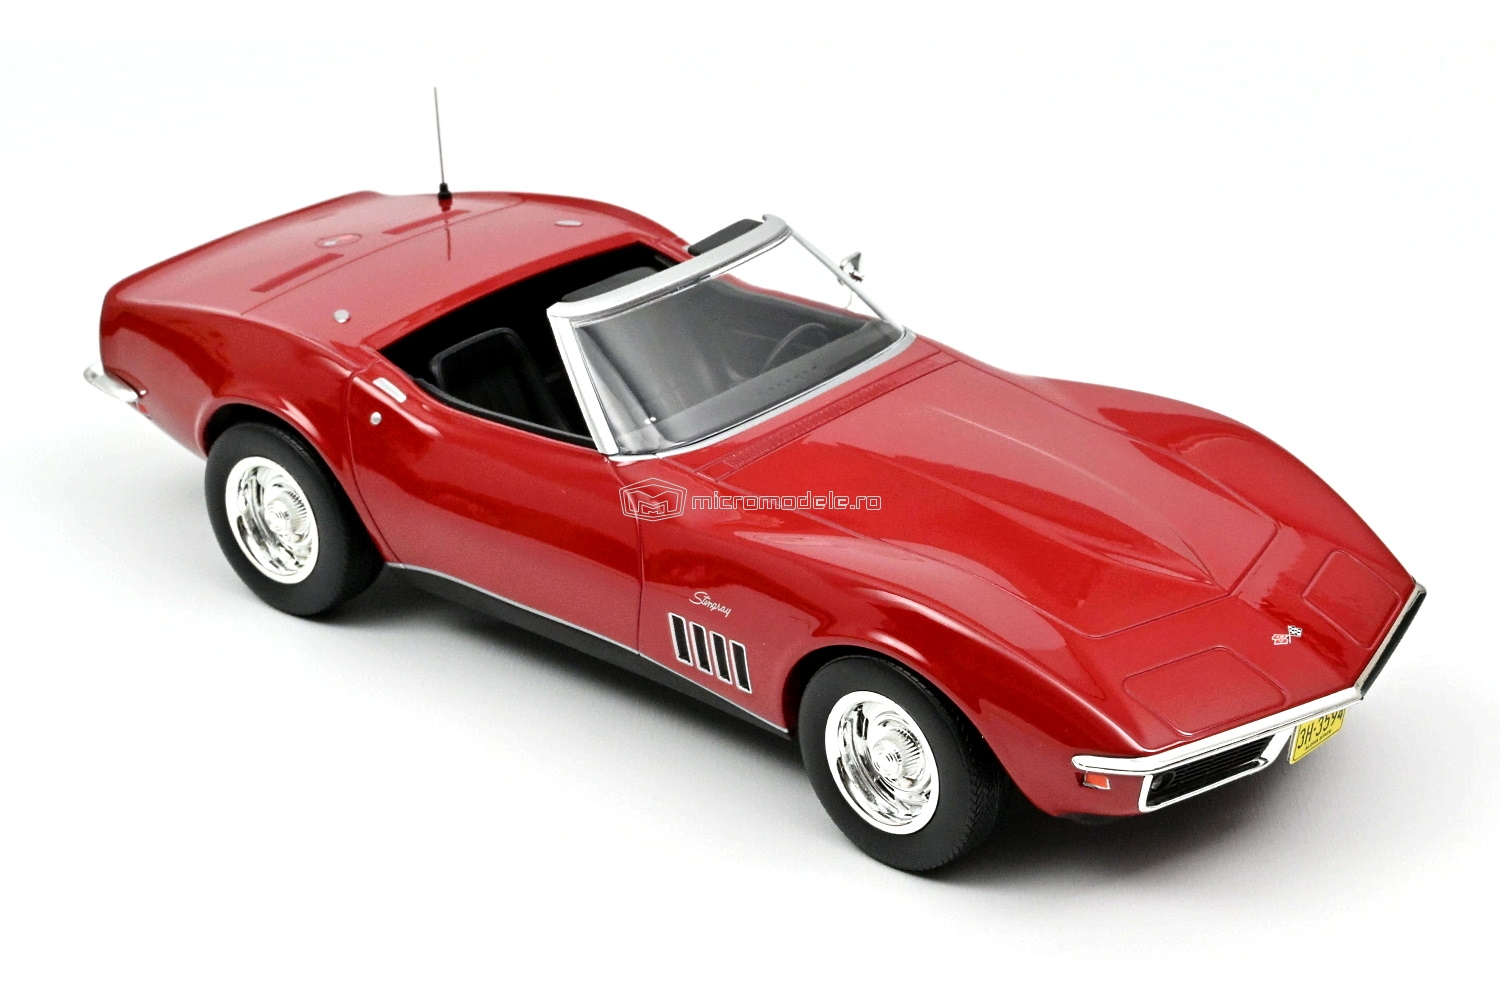 CHEVROLET Corvette C3 Convertible (1969)